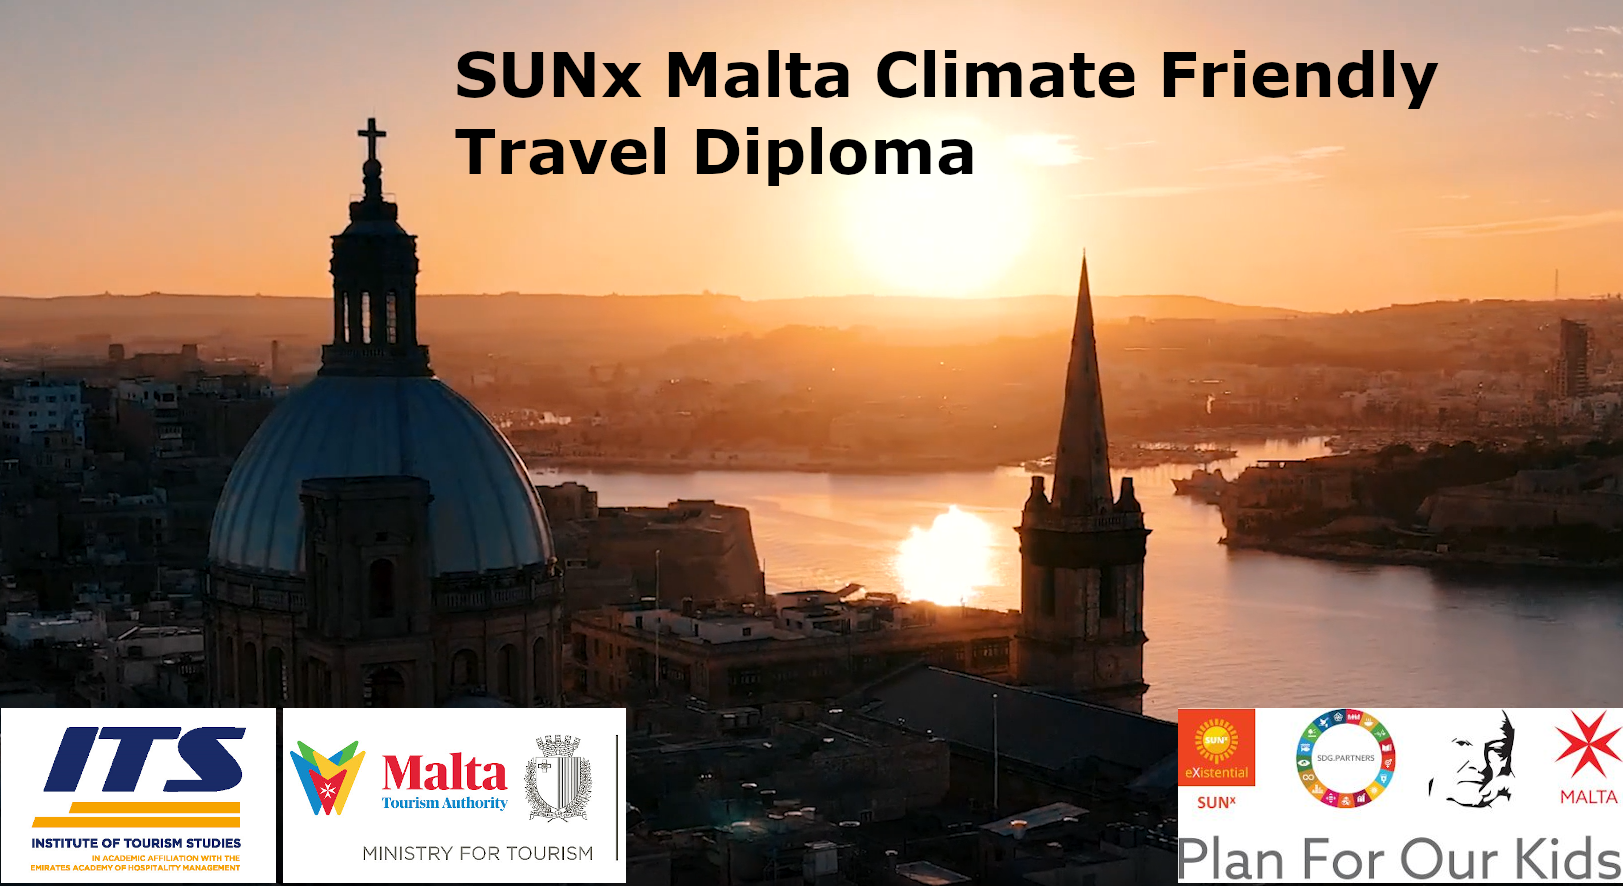 SUNx Malta launches world's first Climate Friendly Travel Diploma